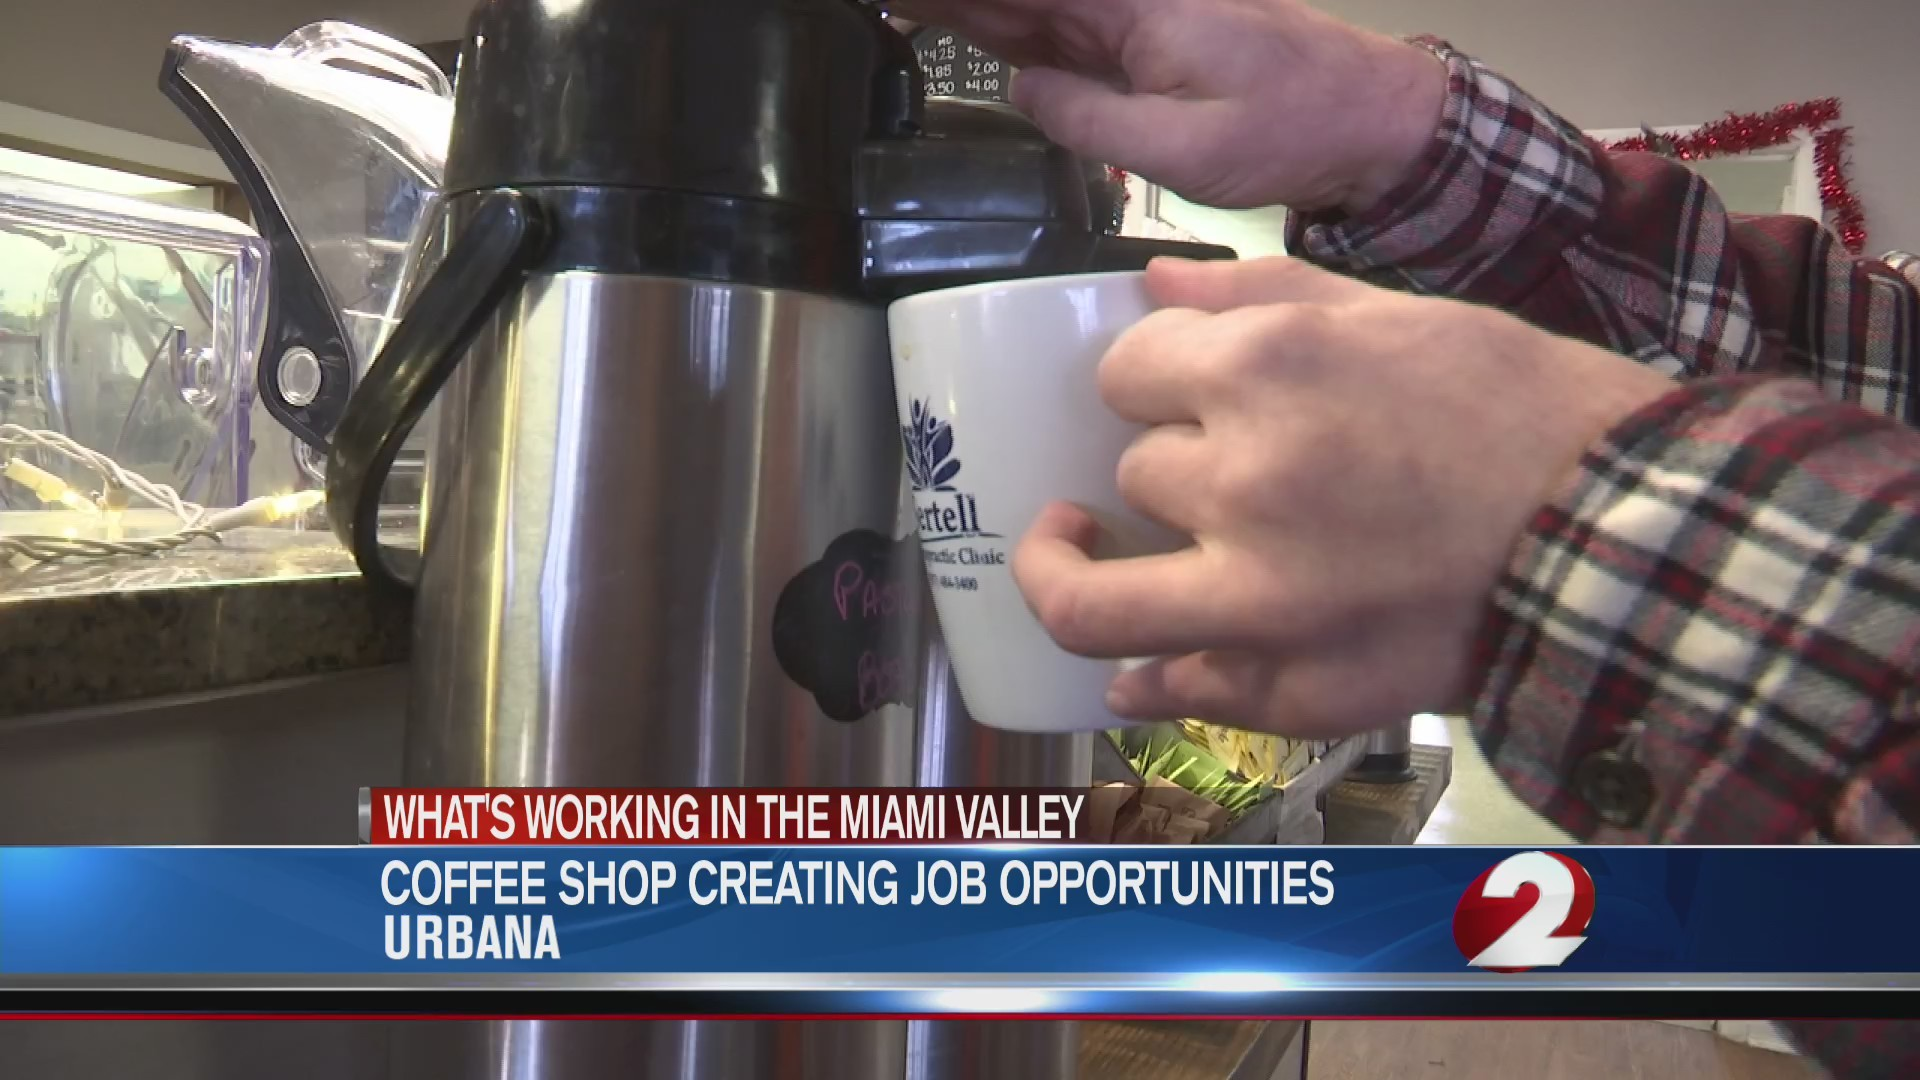 Coffee shop creating job opportunities